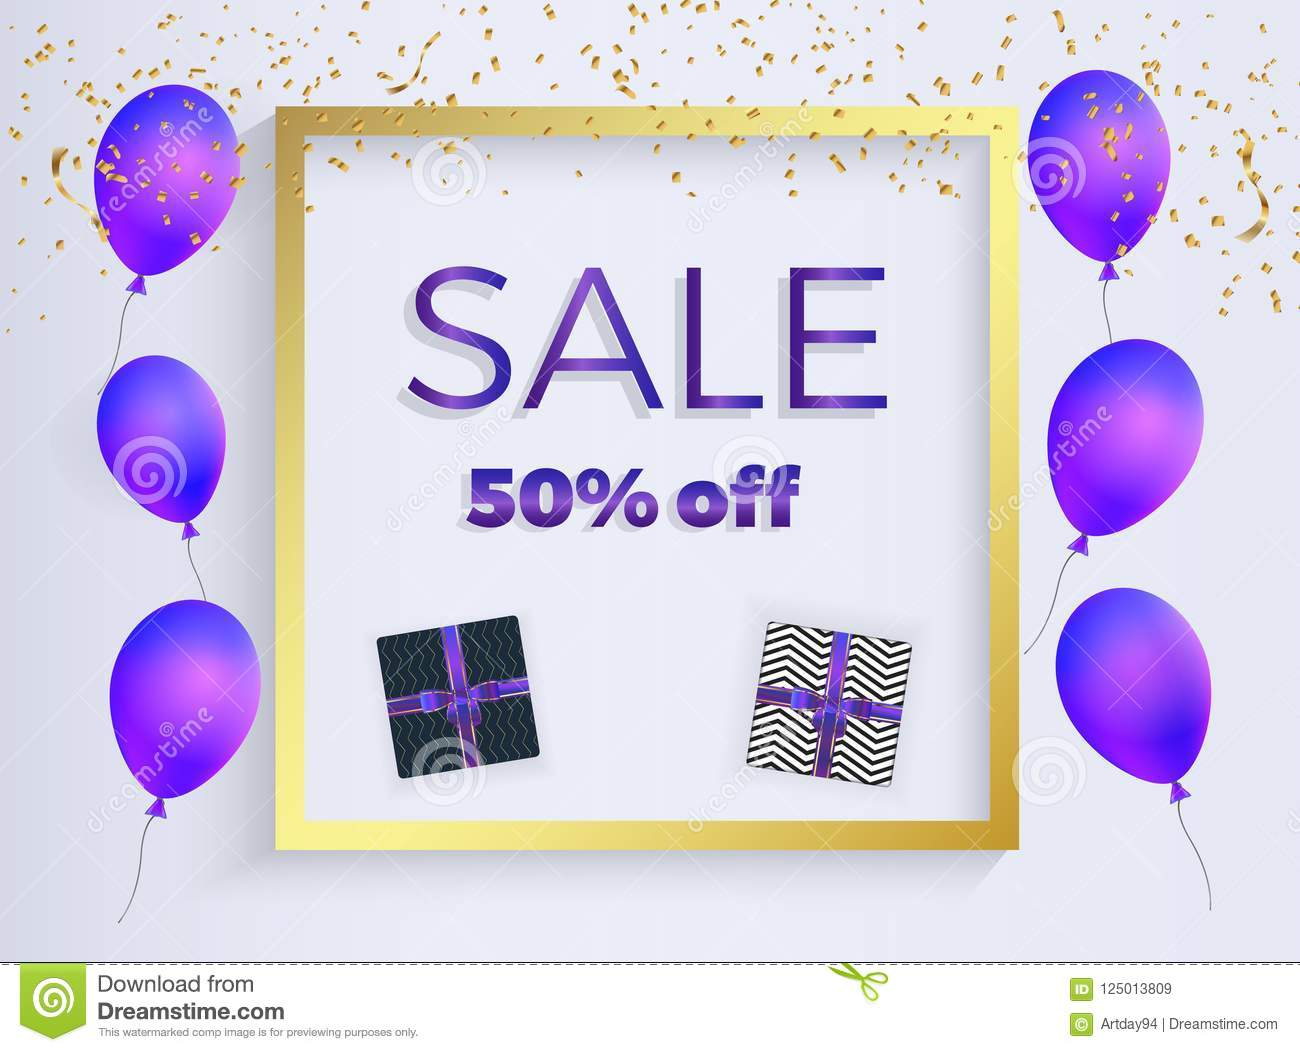 Sale banner with purple shaped balloons, box gift with ribbons, gold confetti. Template for the decoration presentation, placards,